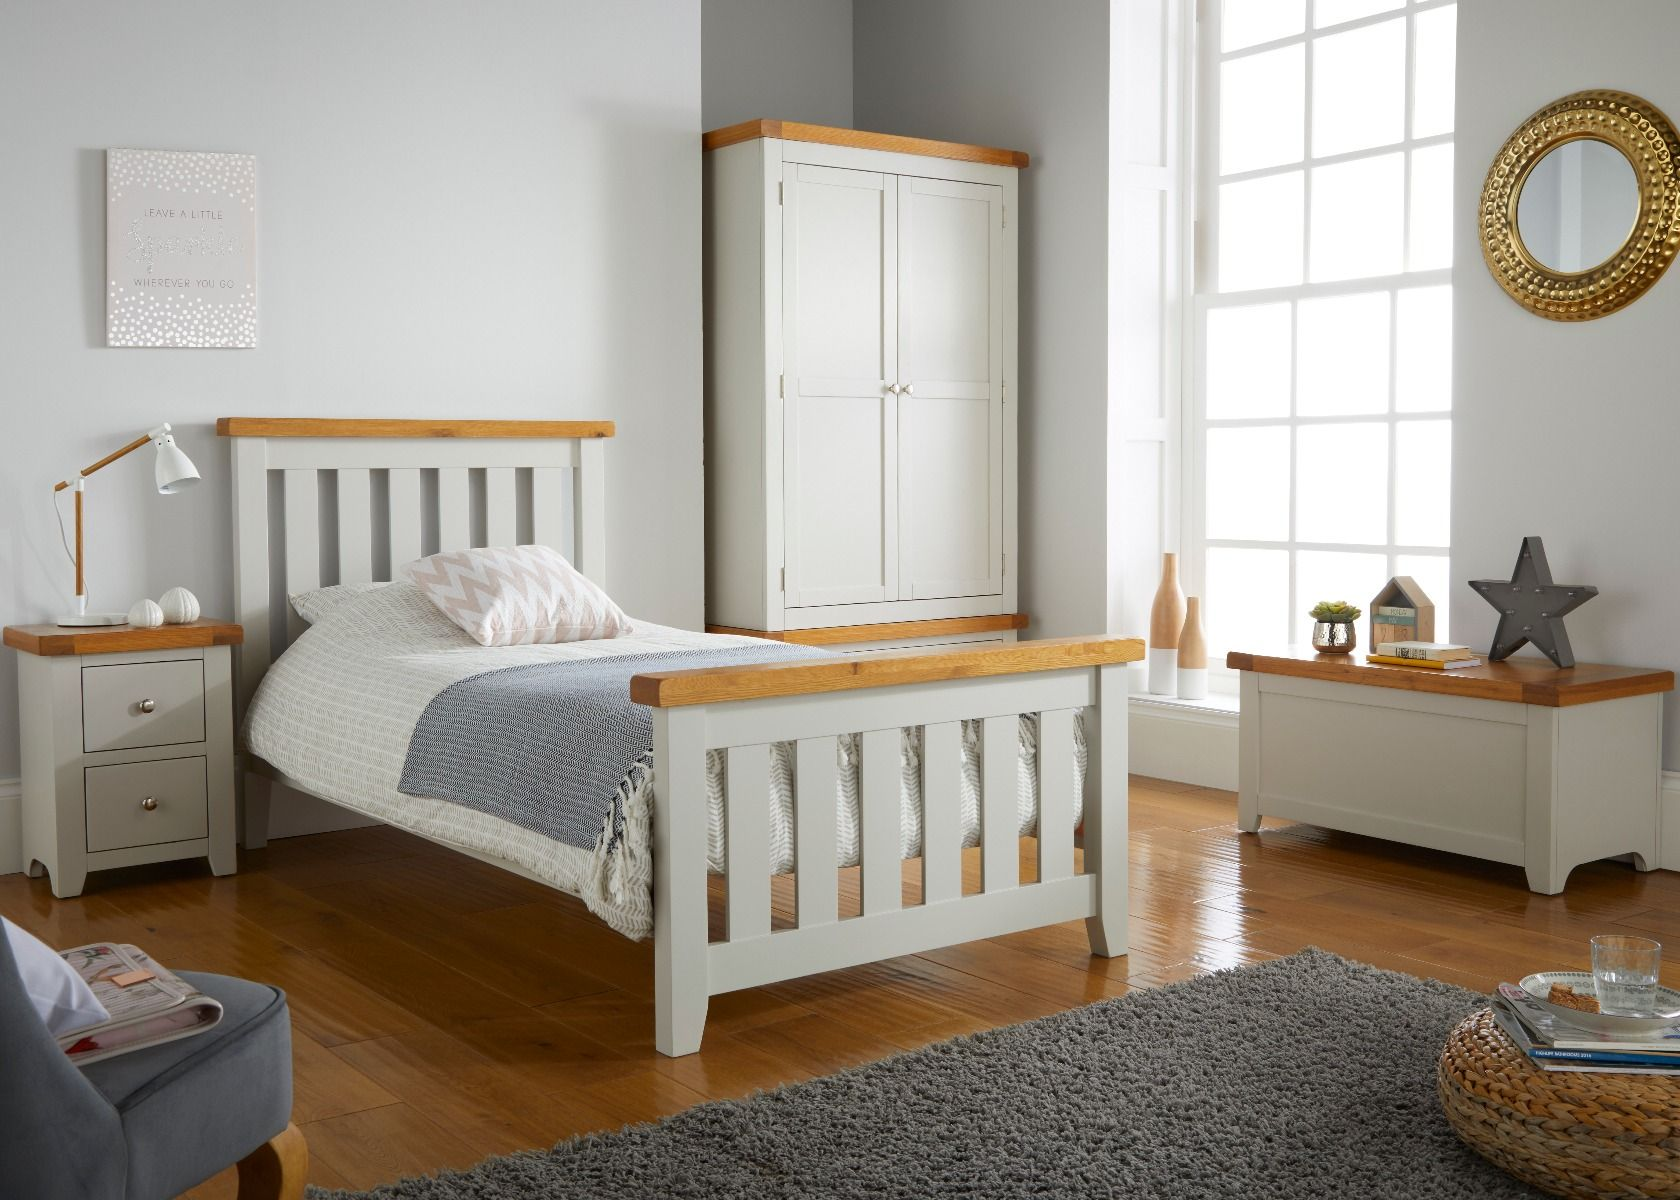 Cheshire Grey Painted 3 Foot Childrens Oak Slatted Bed Free Delivery Top Furniture